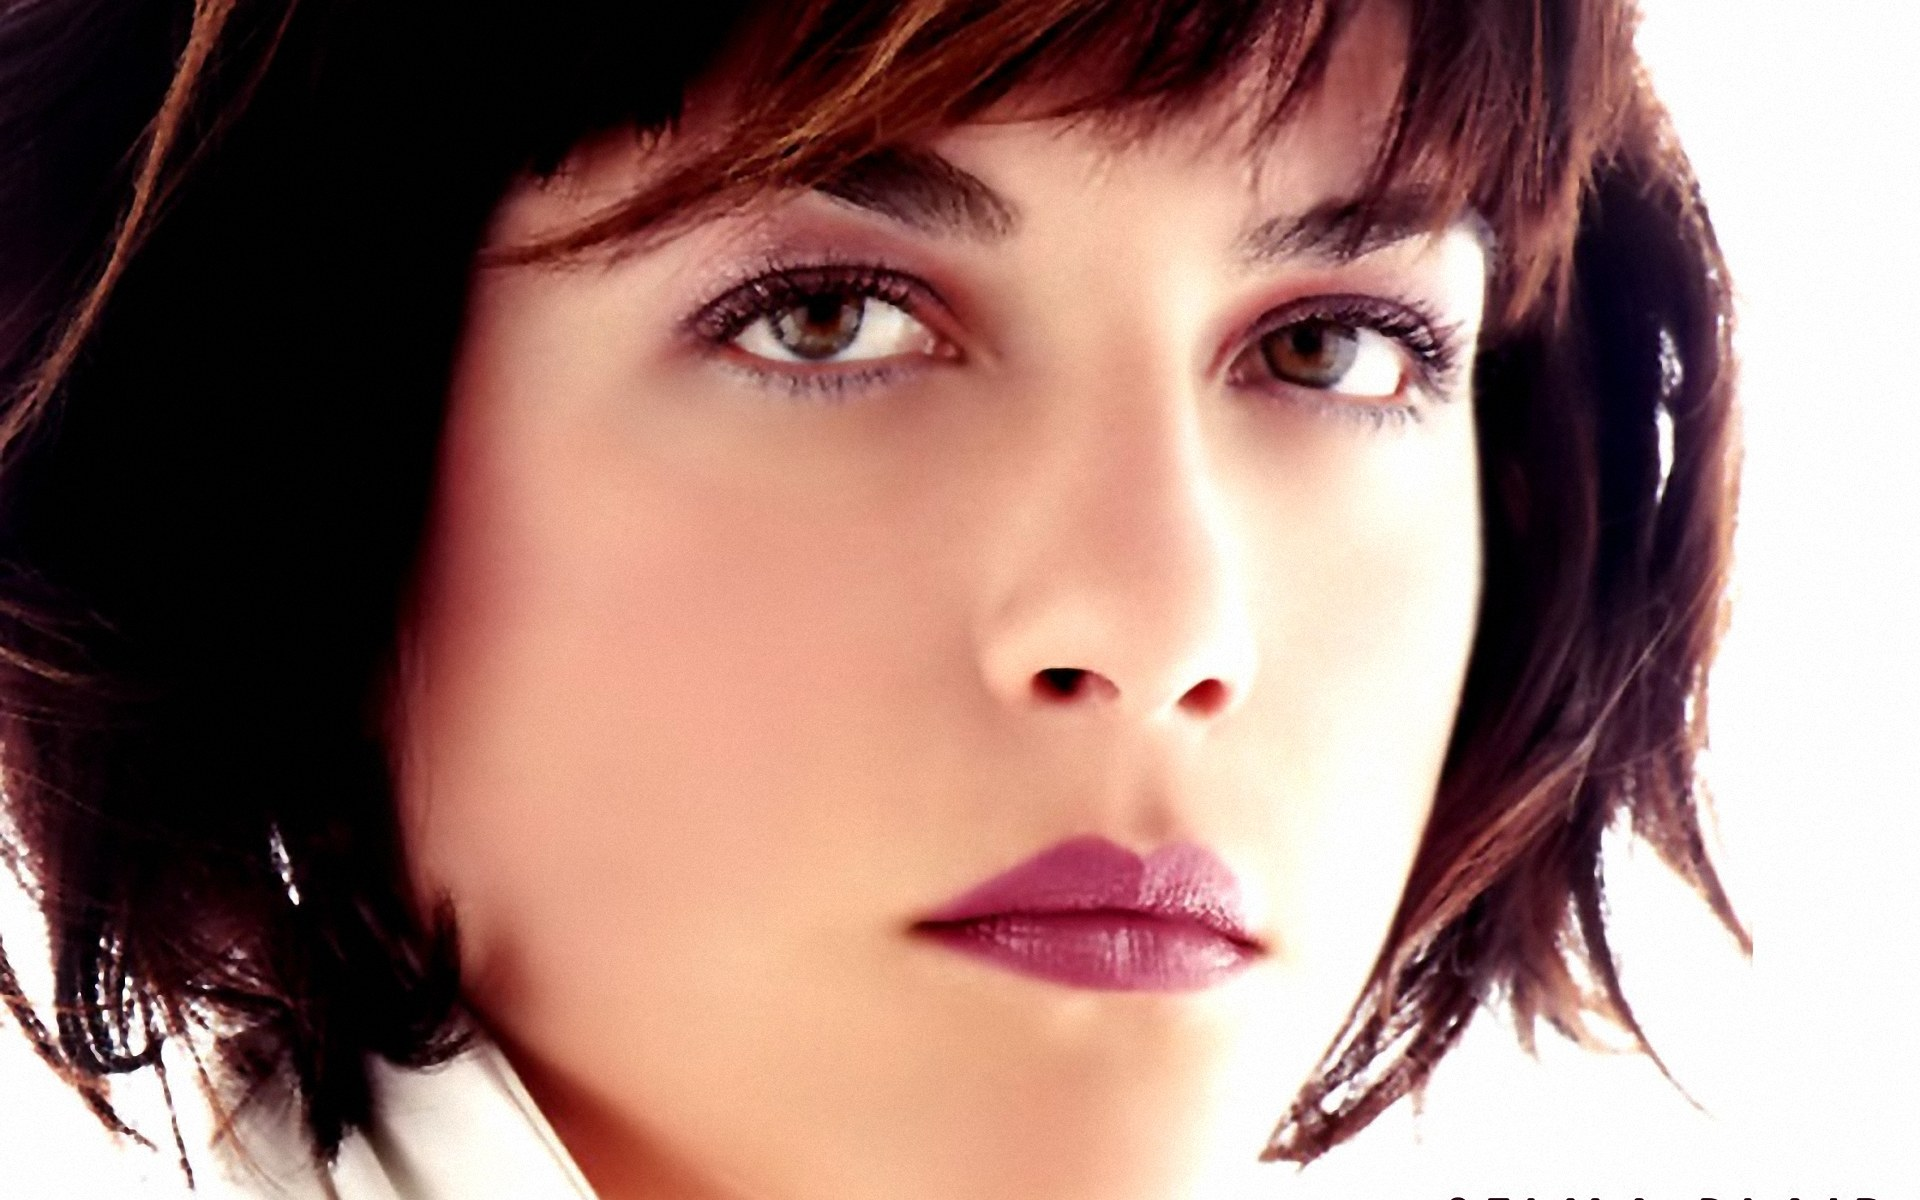 Selma Blair Beitner born June 23 1972 is an American actress She played a number of small roles in films and on television before obtaining recognition for her